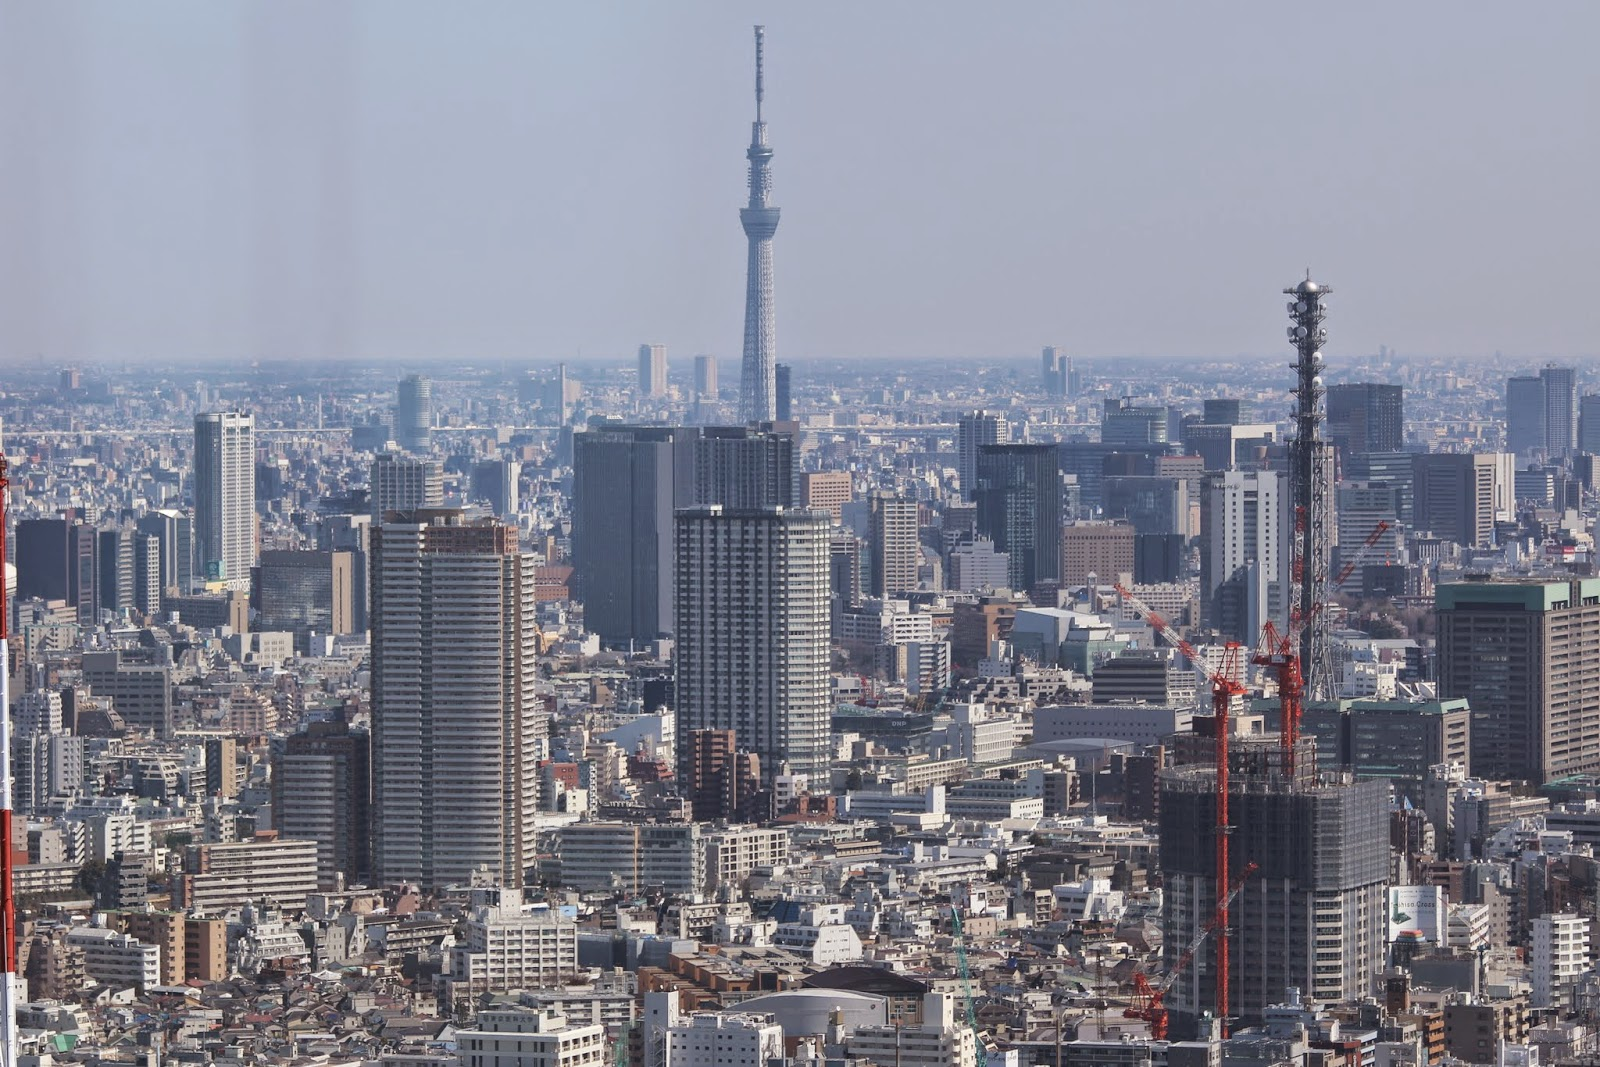 Tokyo Skytree tower can be seen from the observation deck of Tokyo Metropolitan Government Building at Shinjuku Business District of Tokyo, Japan